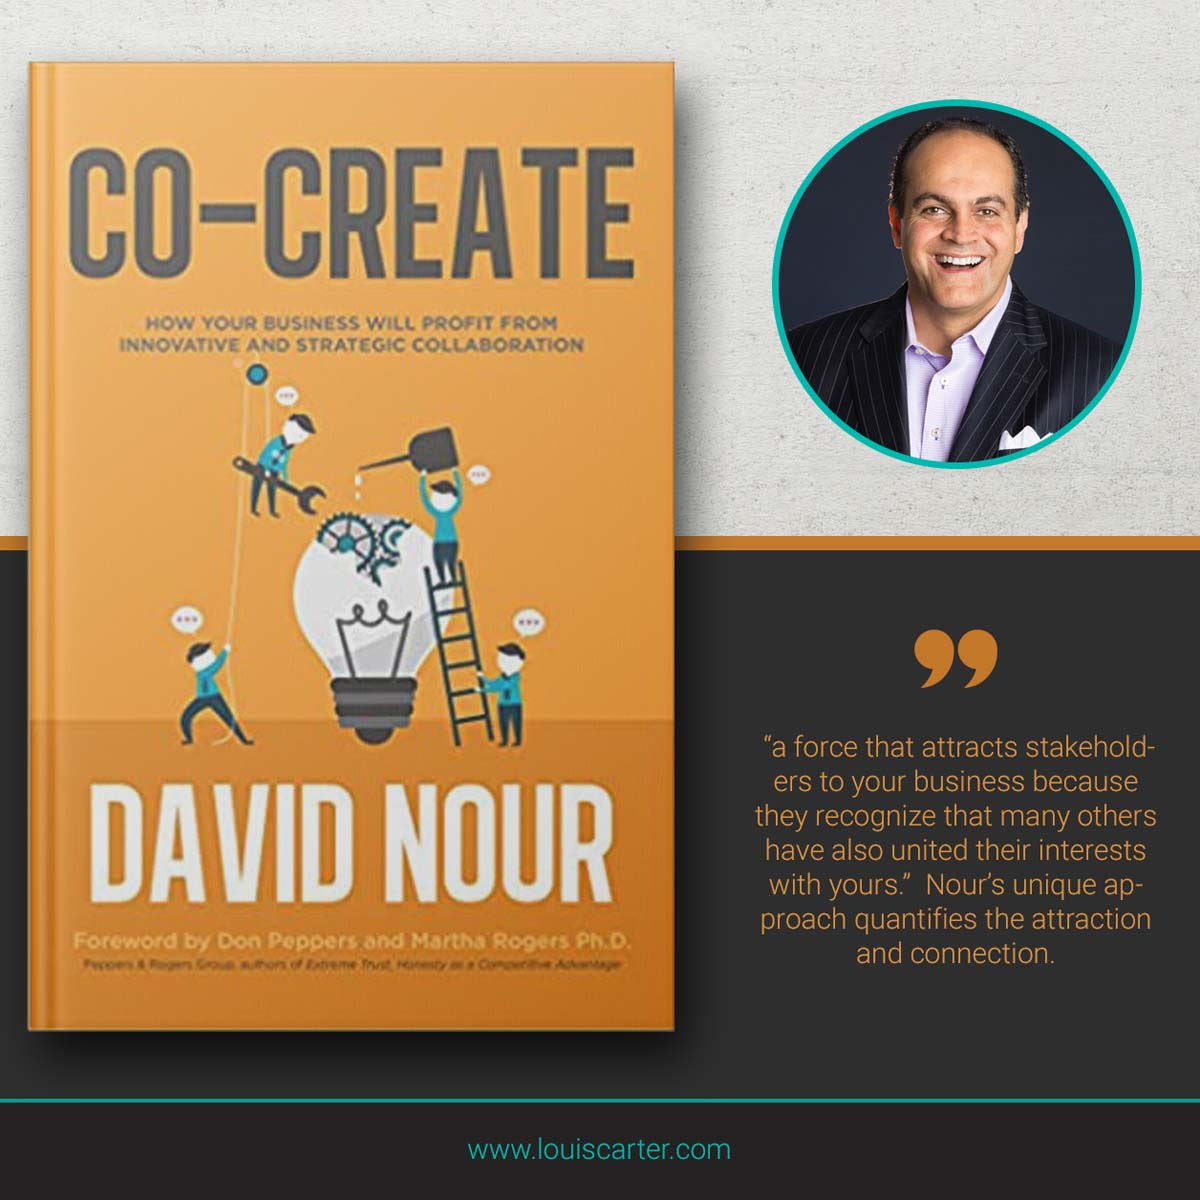 Image of Co-Create best Leadership books by David Nour.